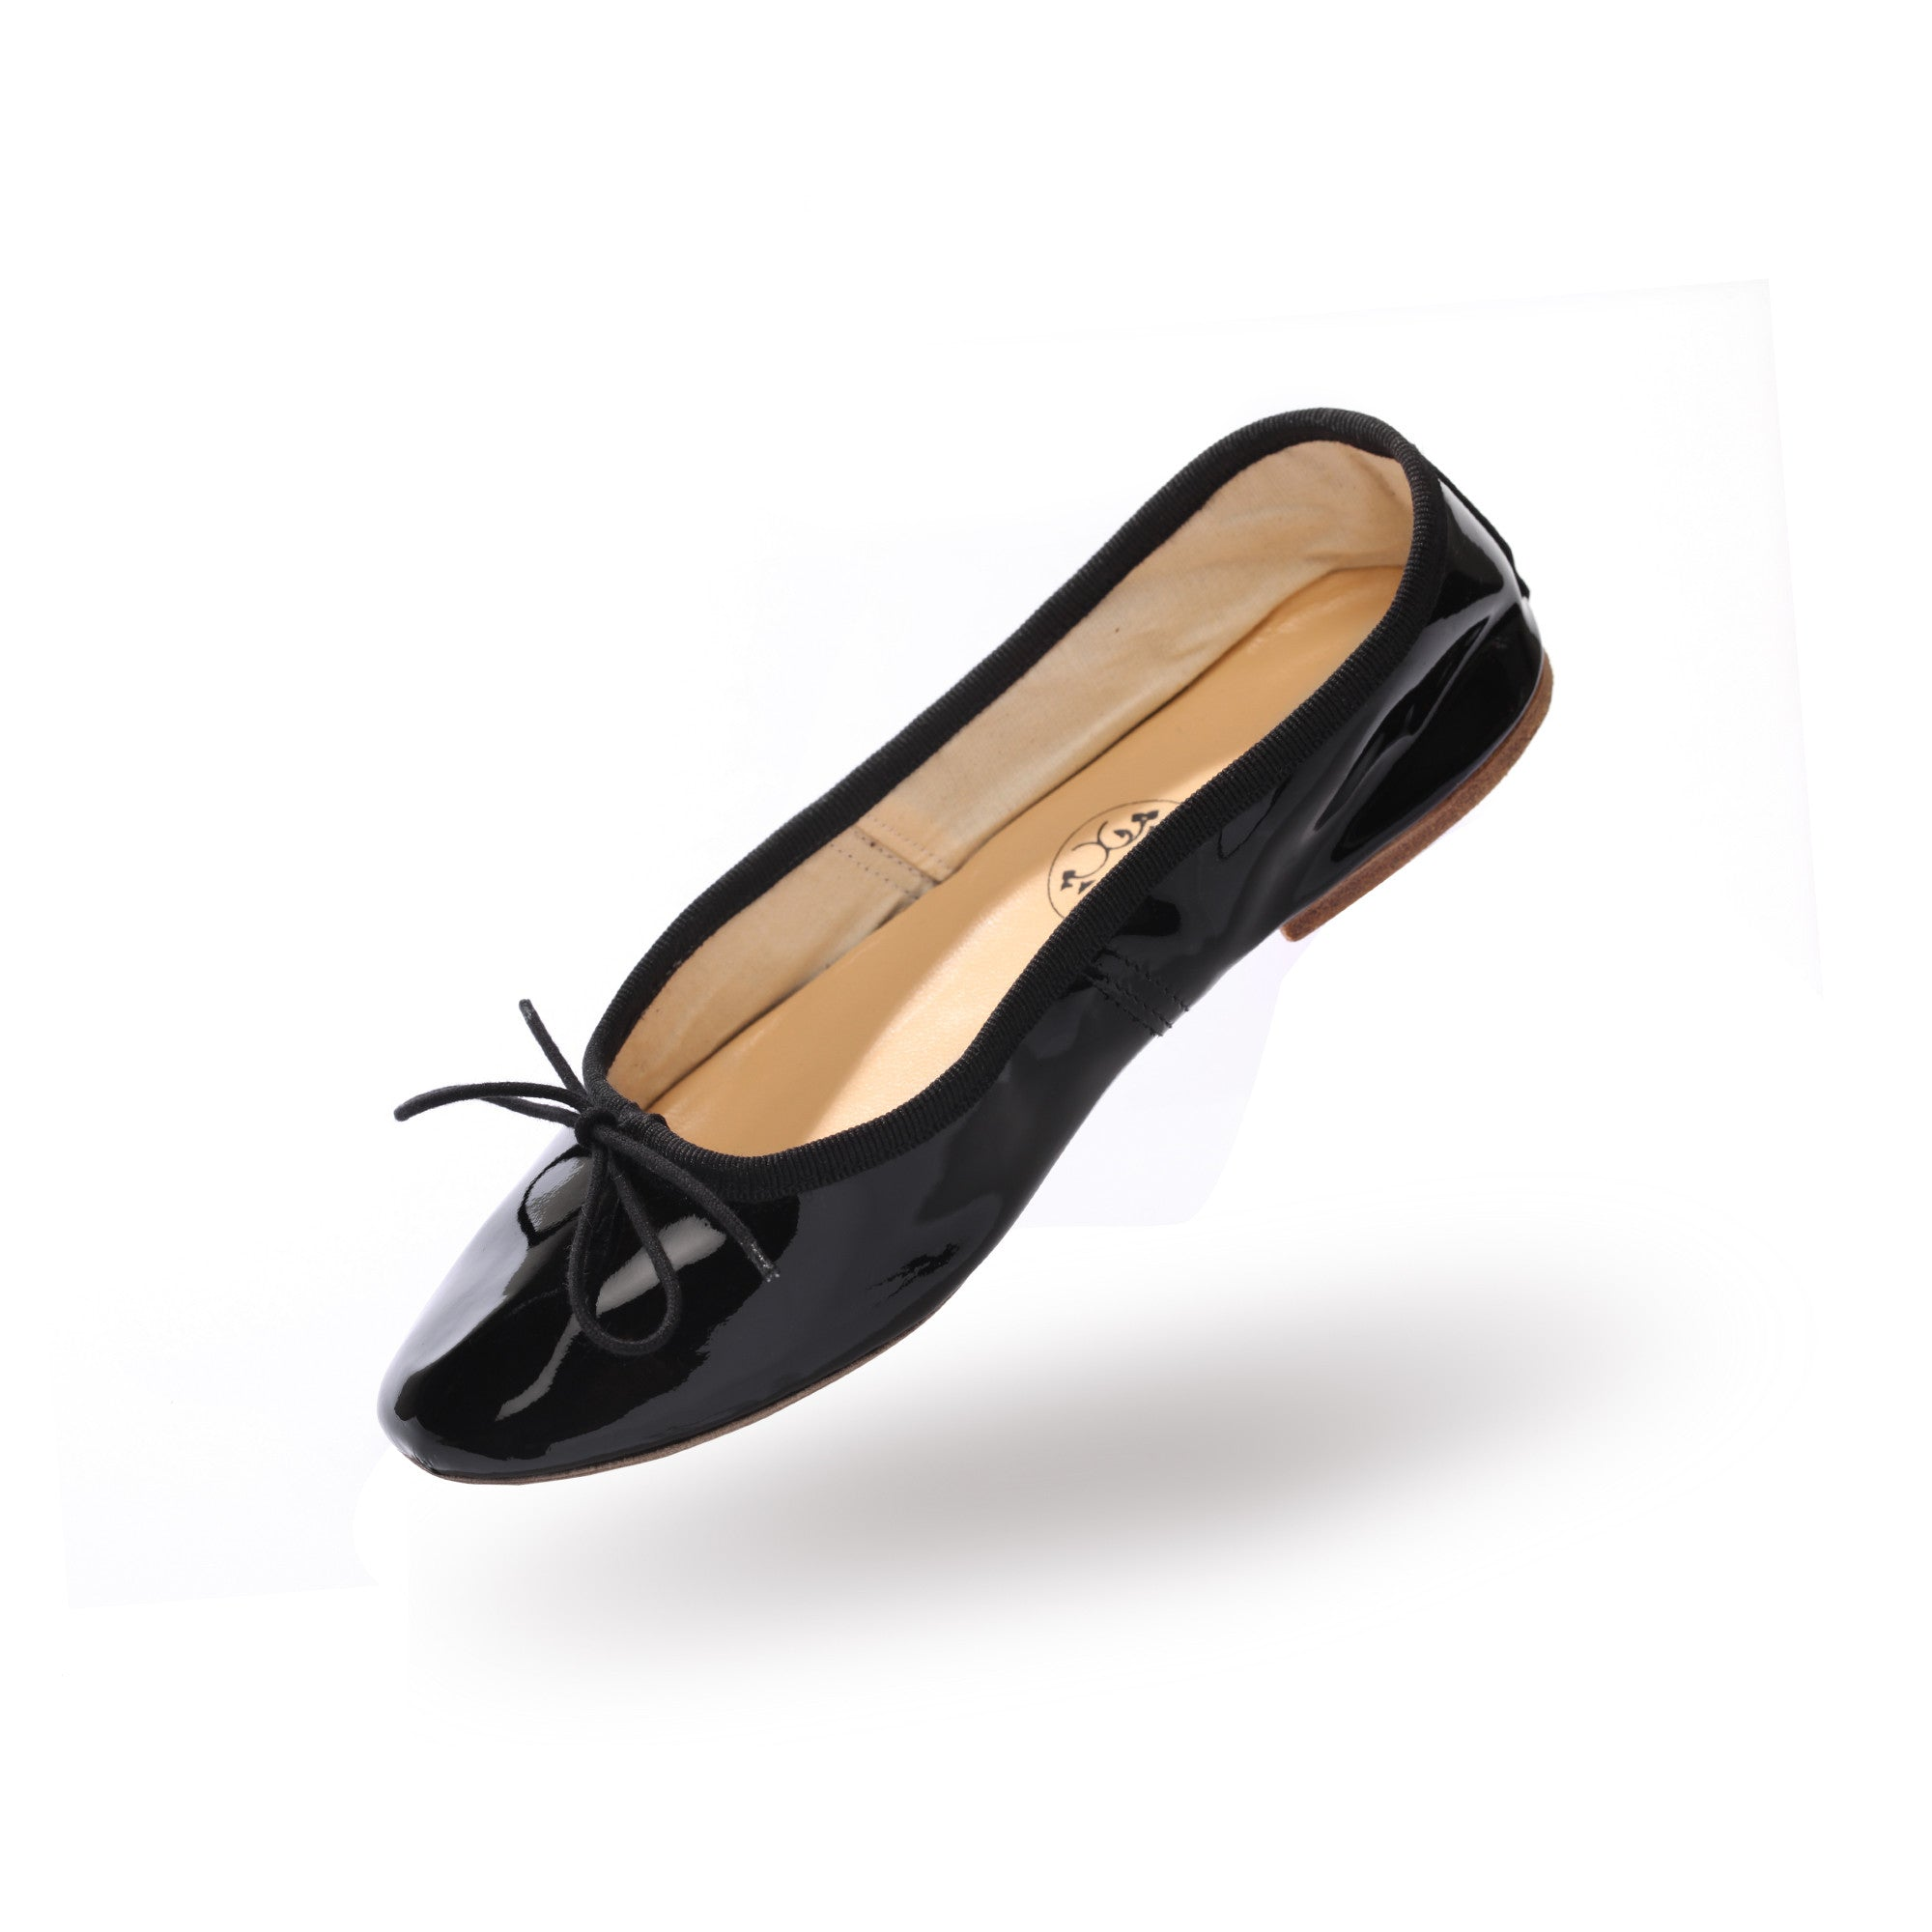 Buy Devious 7 Inch Sexy High Heel Fetish Ballet Shoes Black Patent and other Pumps at lidarwindtechnolog.ga Our wide selection is eligible for free shipping and free returns.